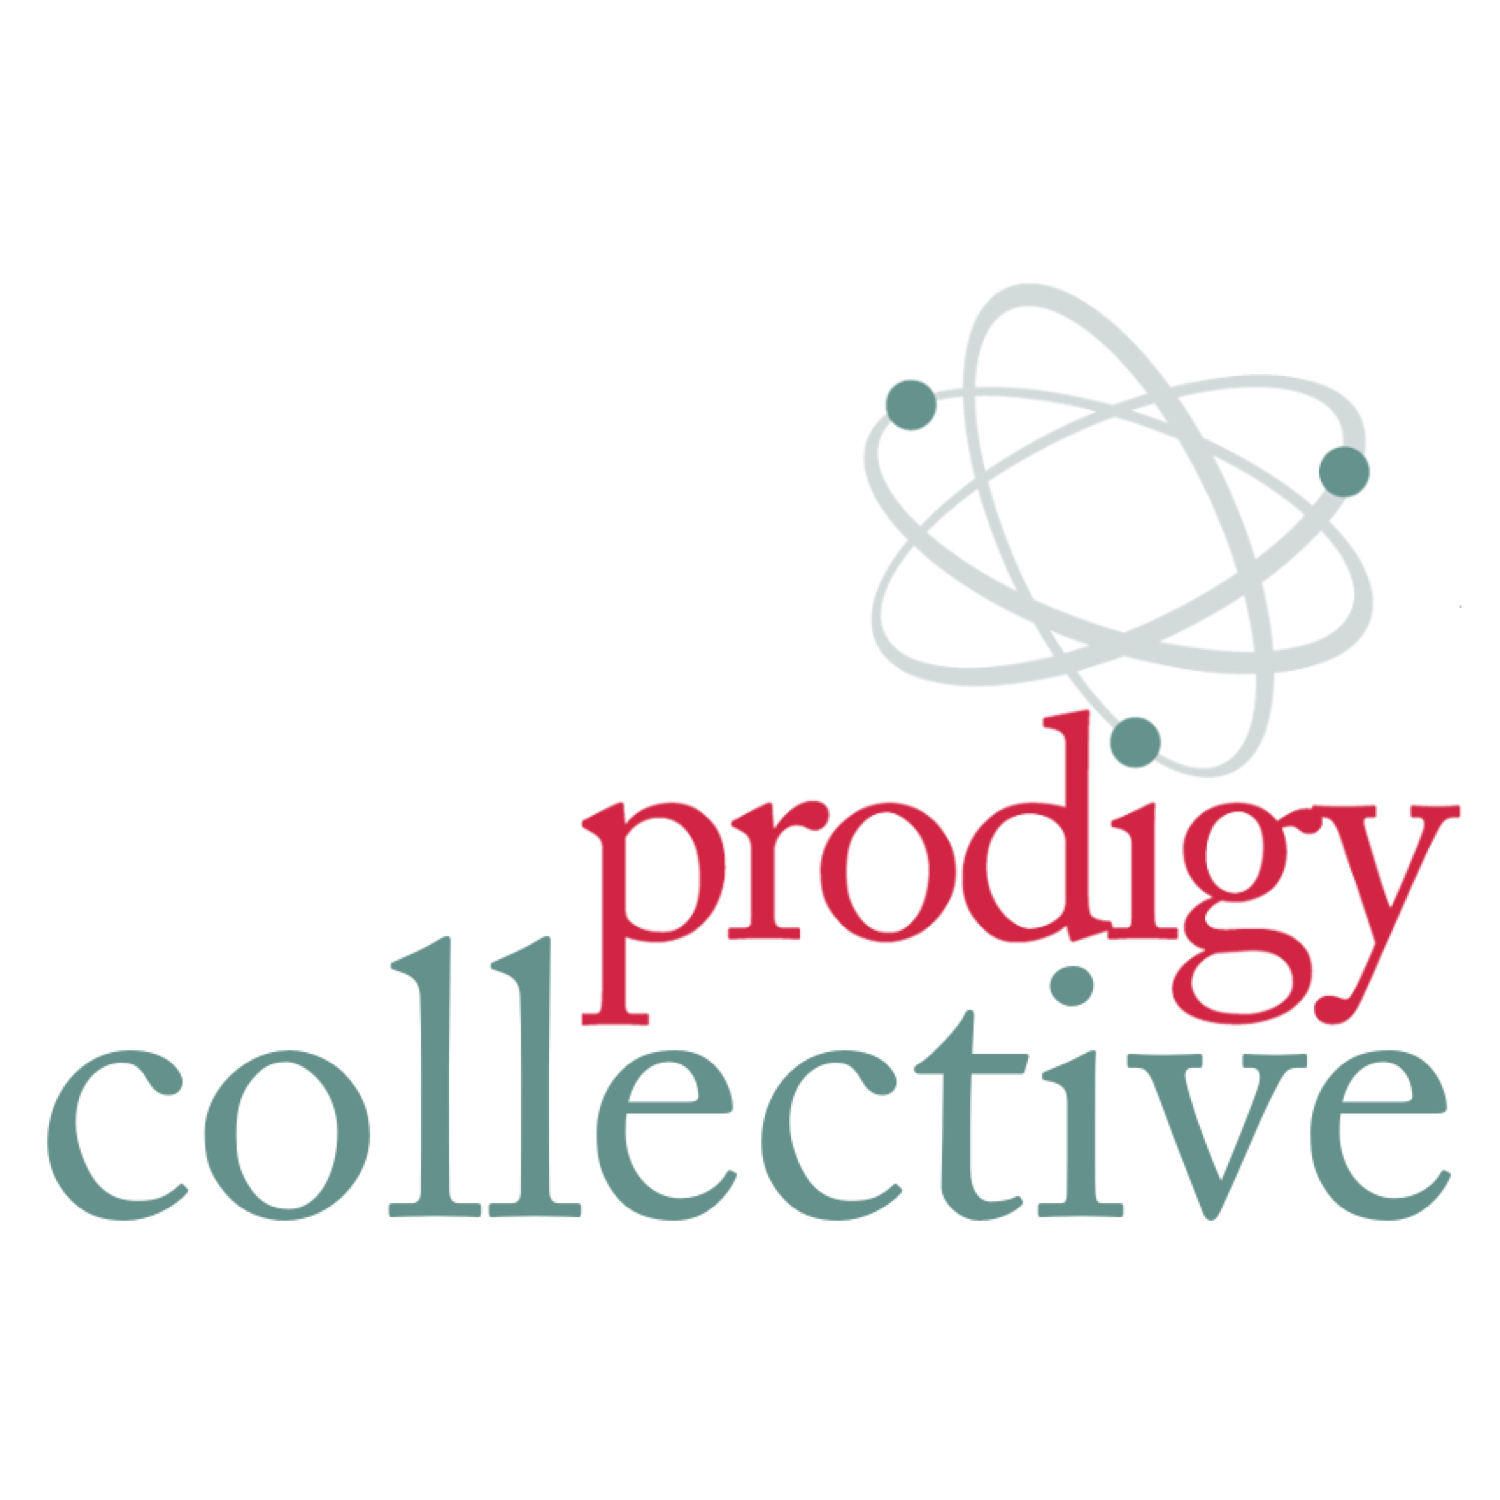 Prodigy Collective   Prodigy Collective is a team of successful women entrepreneurs ready to support YOUR business through collective business coaching. Whether you're starting out, scaling up, or just plain overwhelmed, Prodigy Collective is your backup. Your support sisters. Your powerhouse business team.